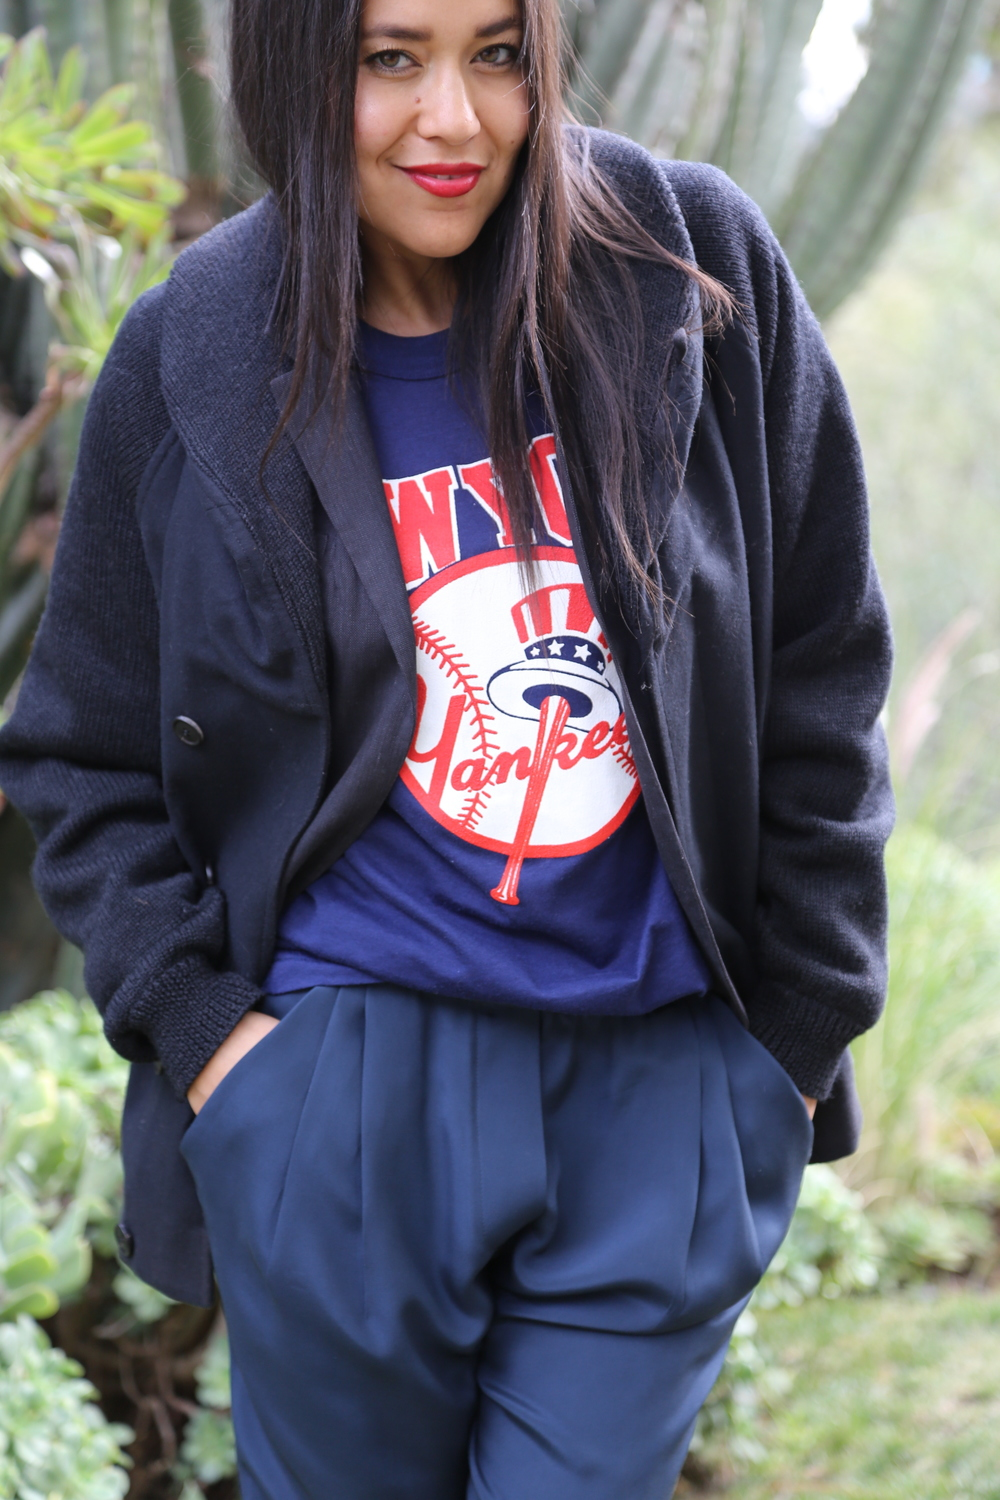 VANESSA-BELETIC-SPORTS-TEE-PHILLIP-LIM-SILK-PANT-NAVY-CARDIGAN-YANKEES-VINTAGE-LOS-ANGELES.JPG